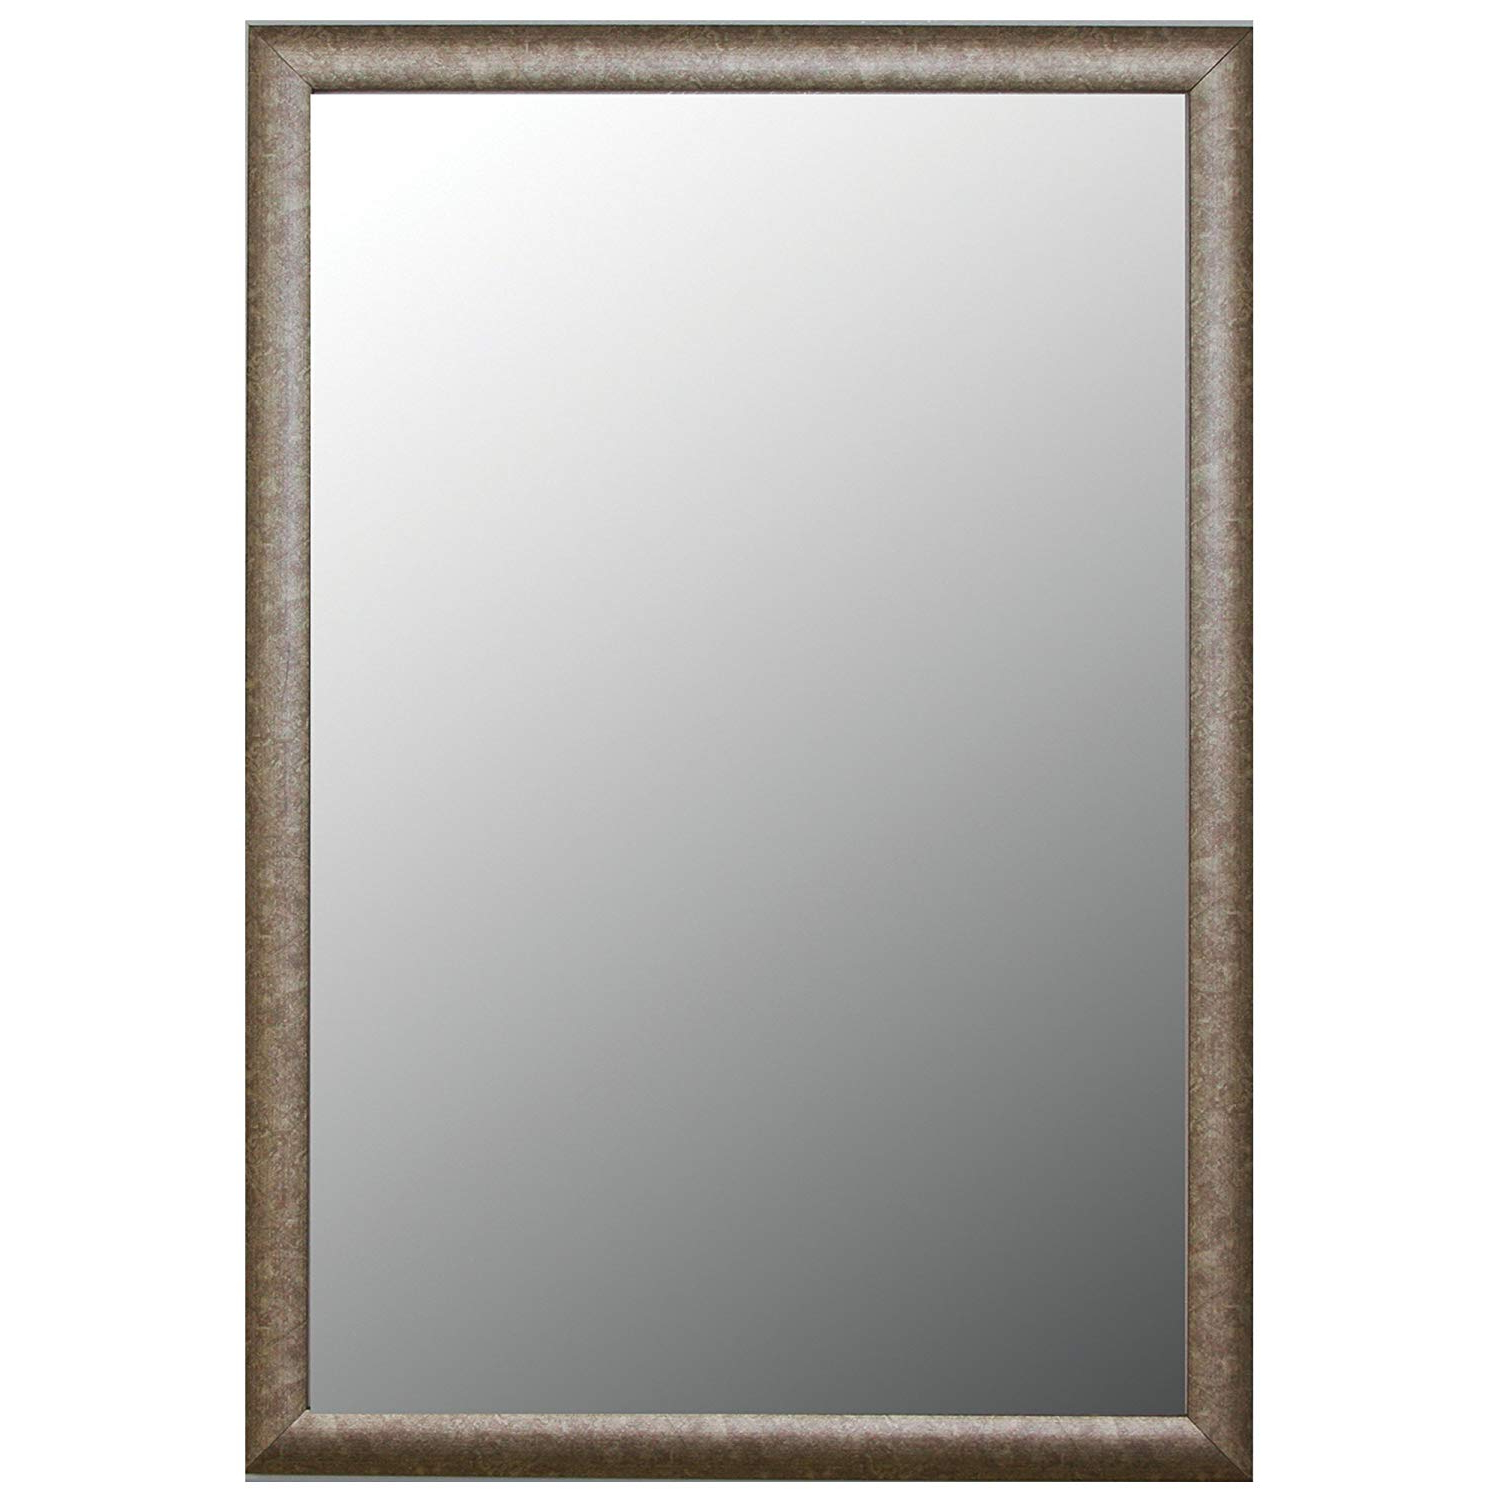 Amazon: Second Look Mirrors Round Top Aged Silver Framed Wall Intended For Newest Arch Top Vertical Wall Mirrors (View 3 of 20)